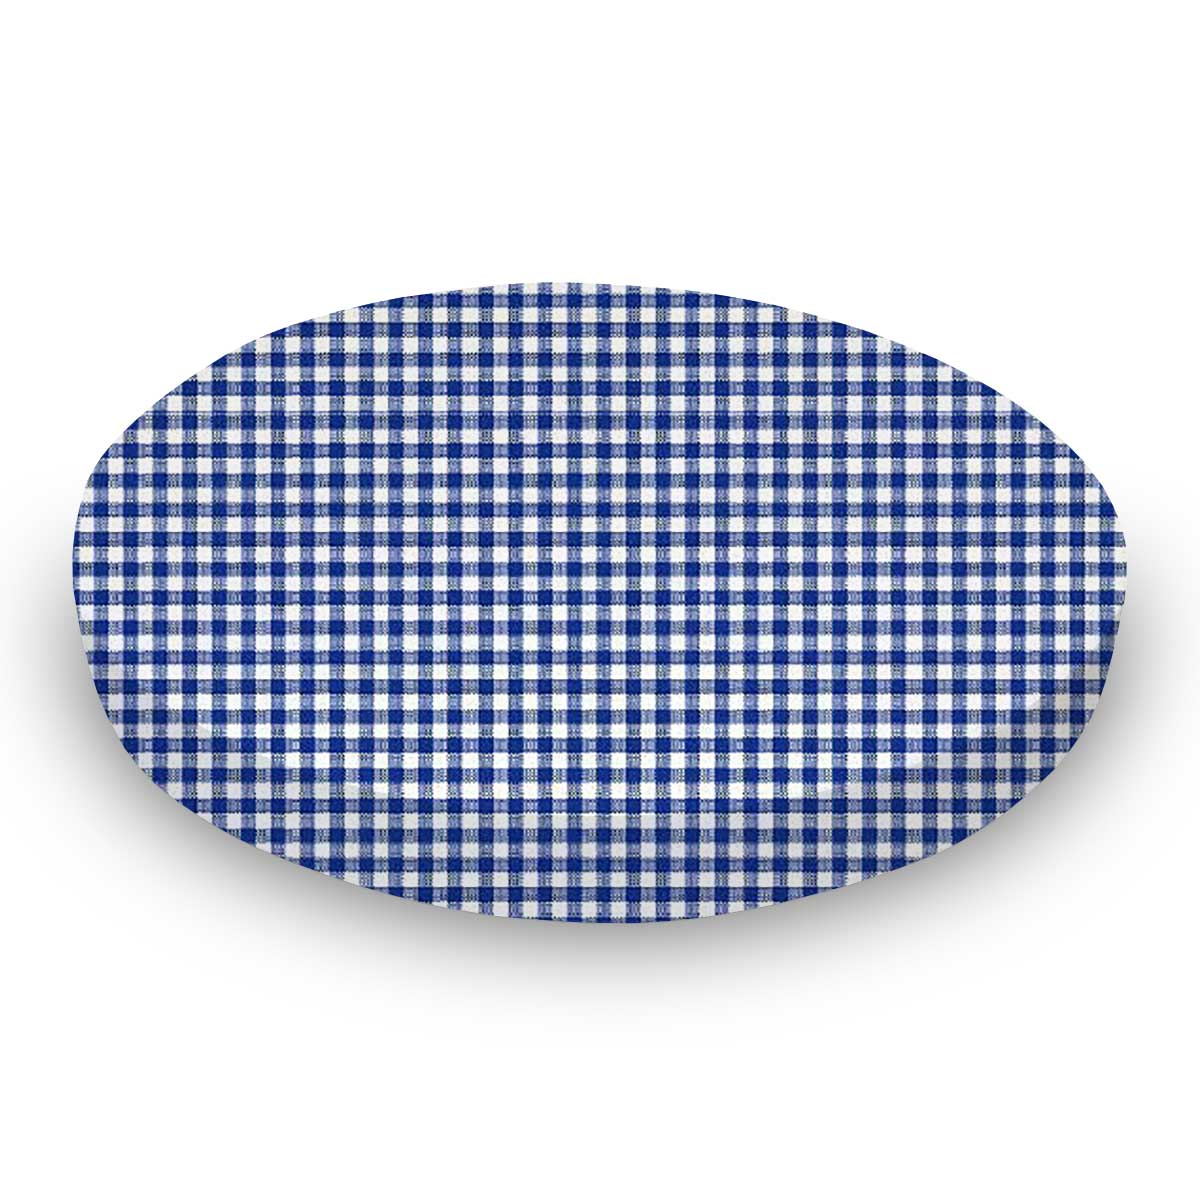 Primary Navy Gingham Woven